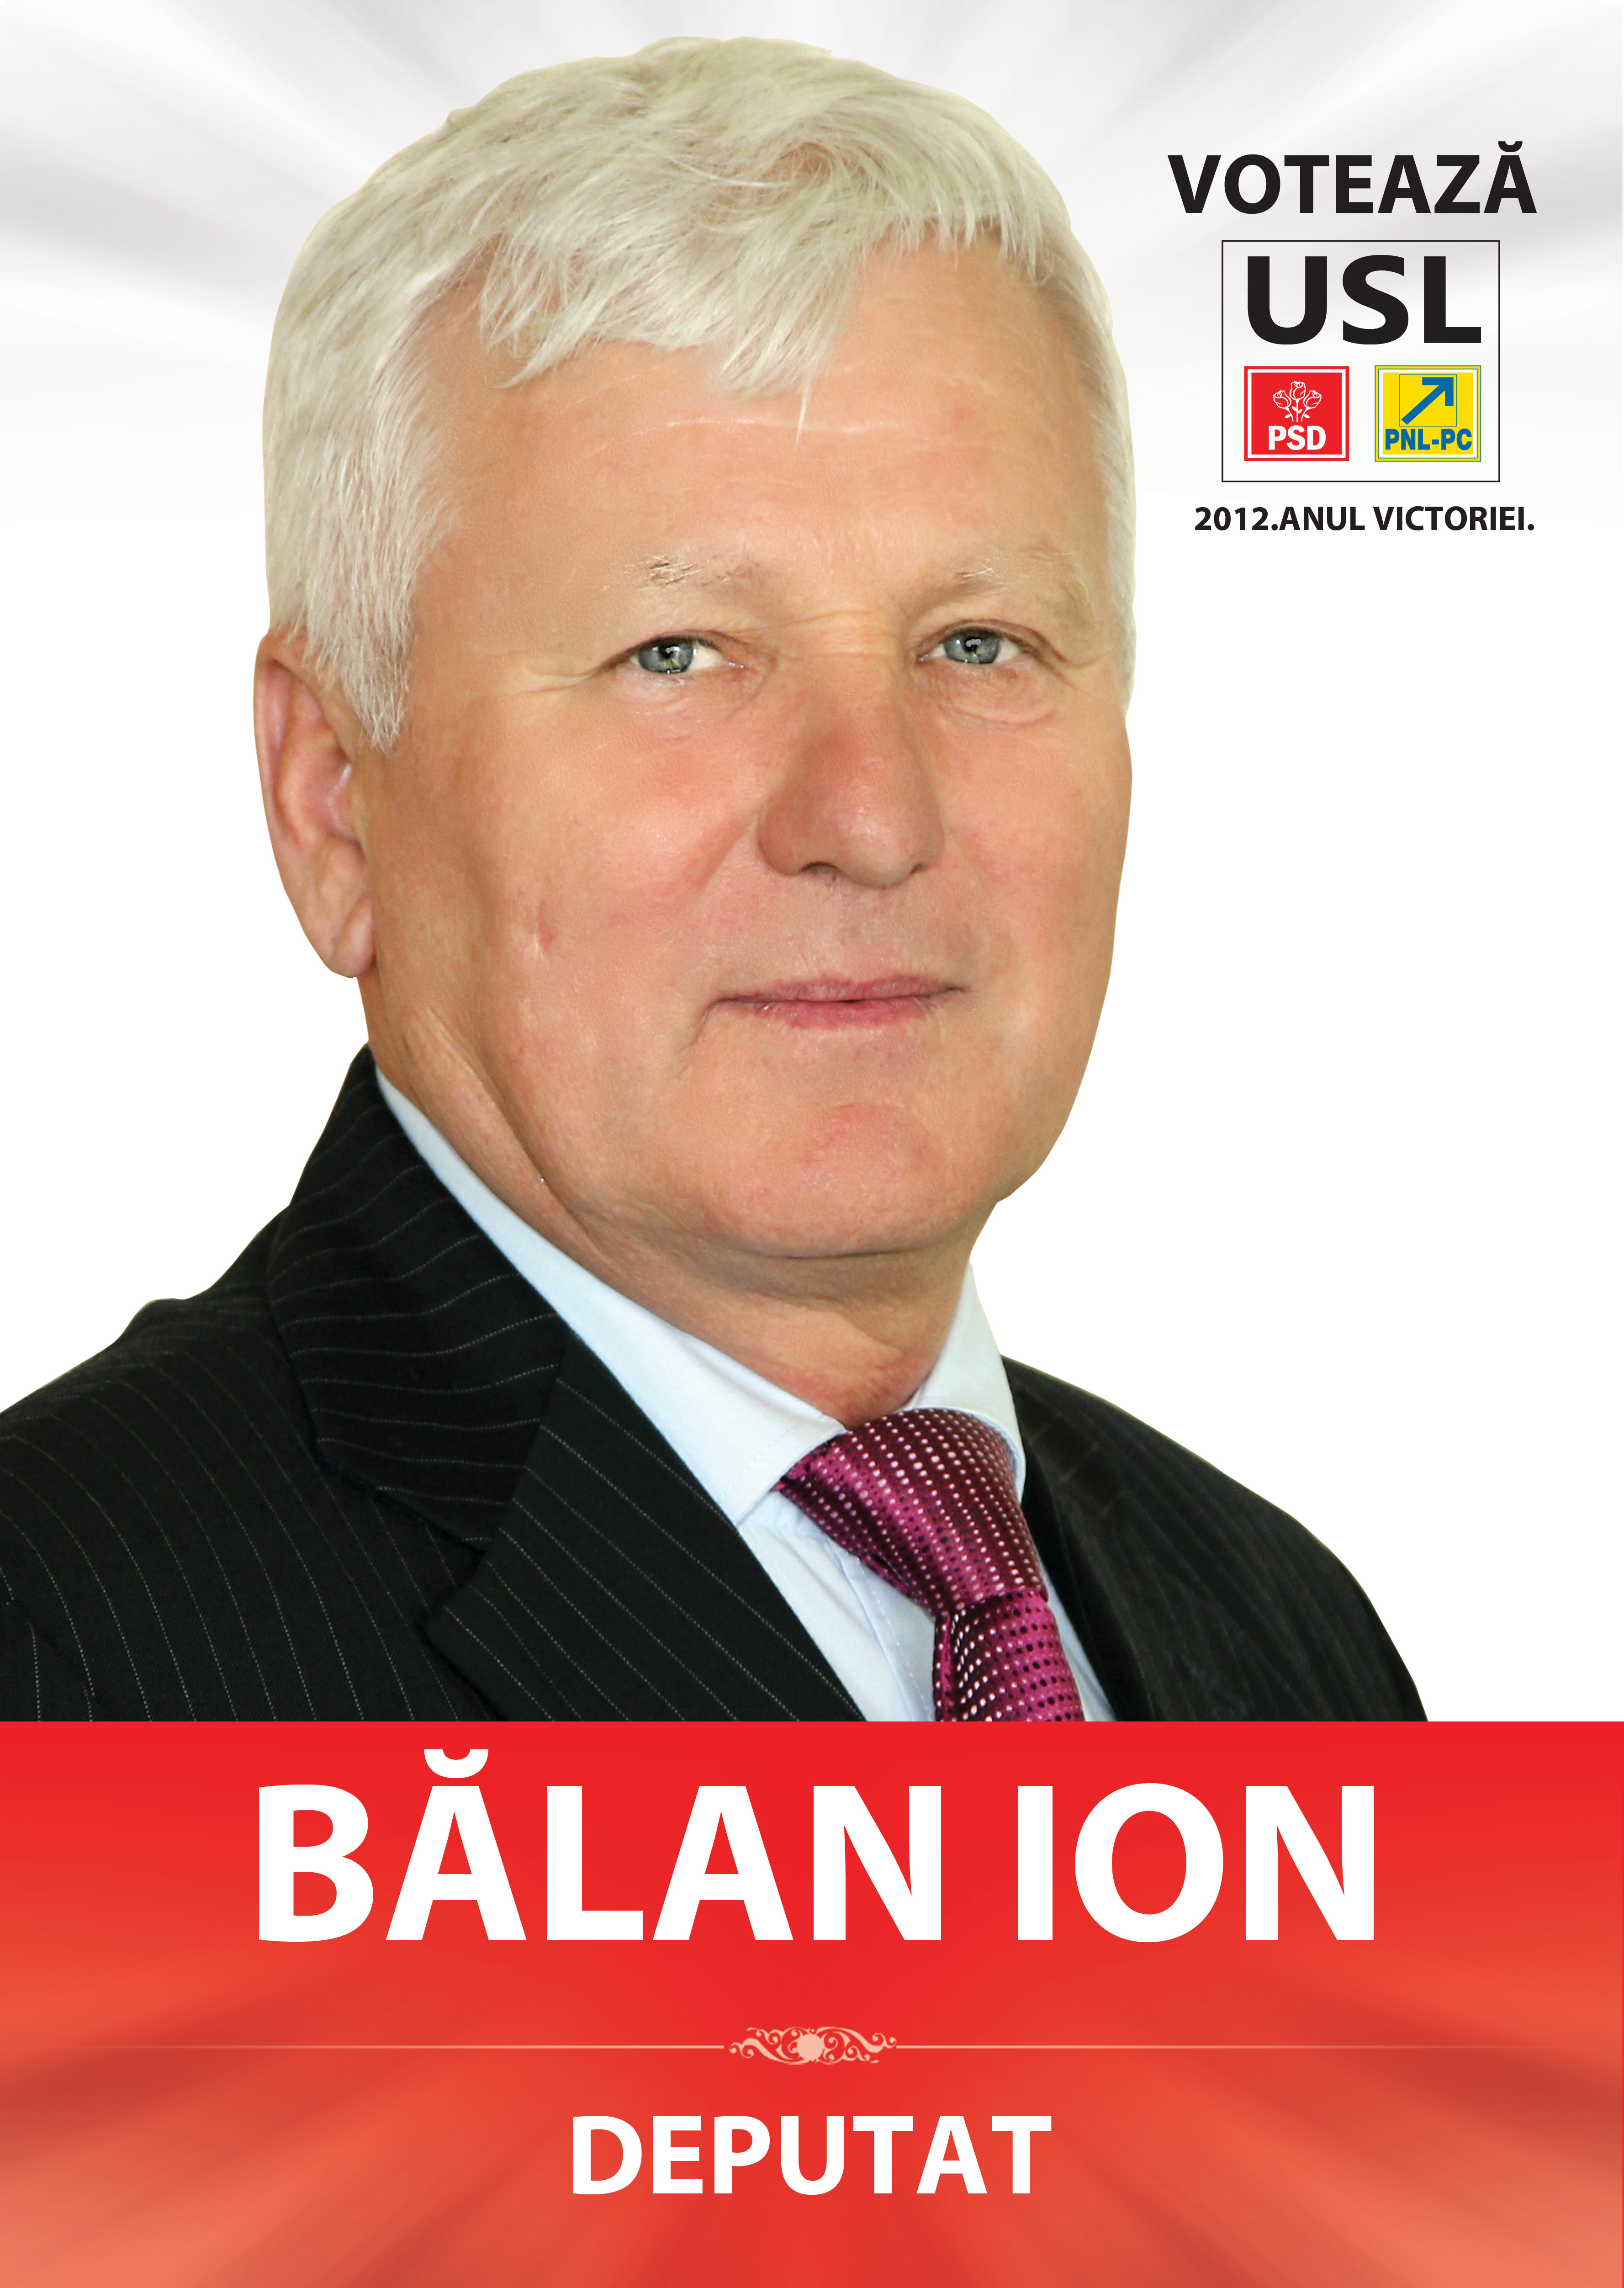 http://balanion.files.wordpress.com/2012/11/balan-online02.jpg